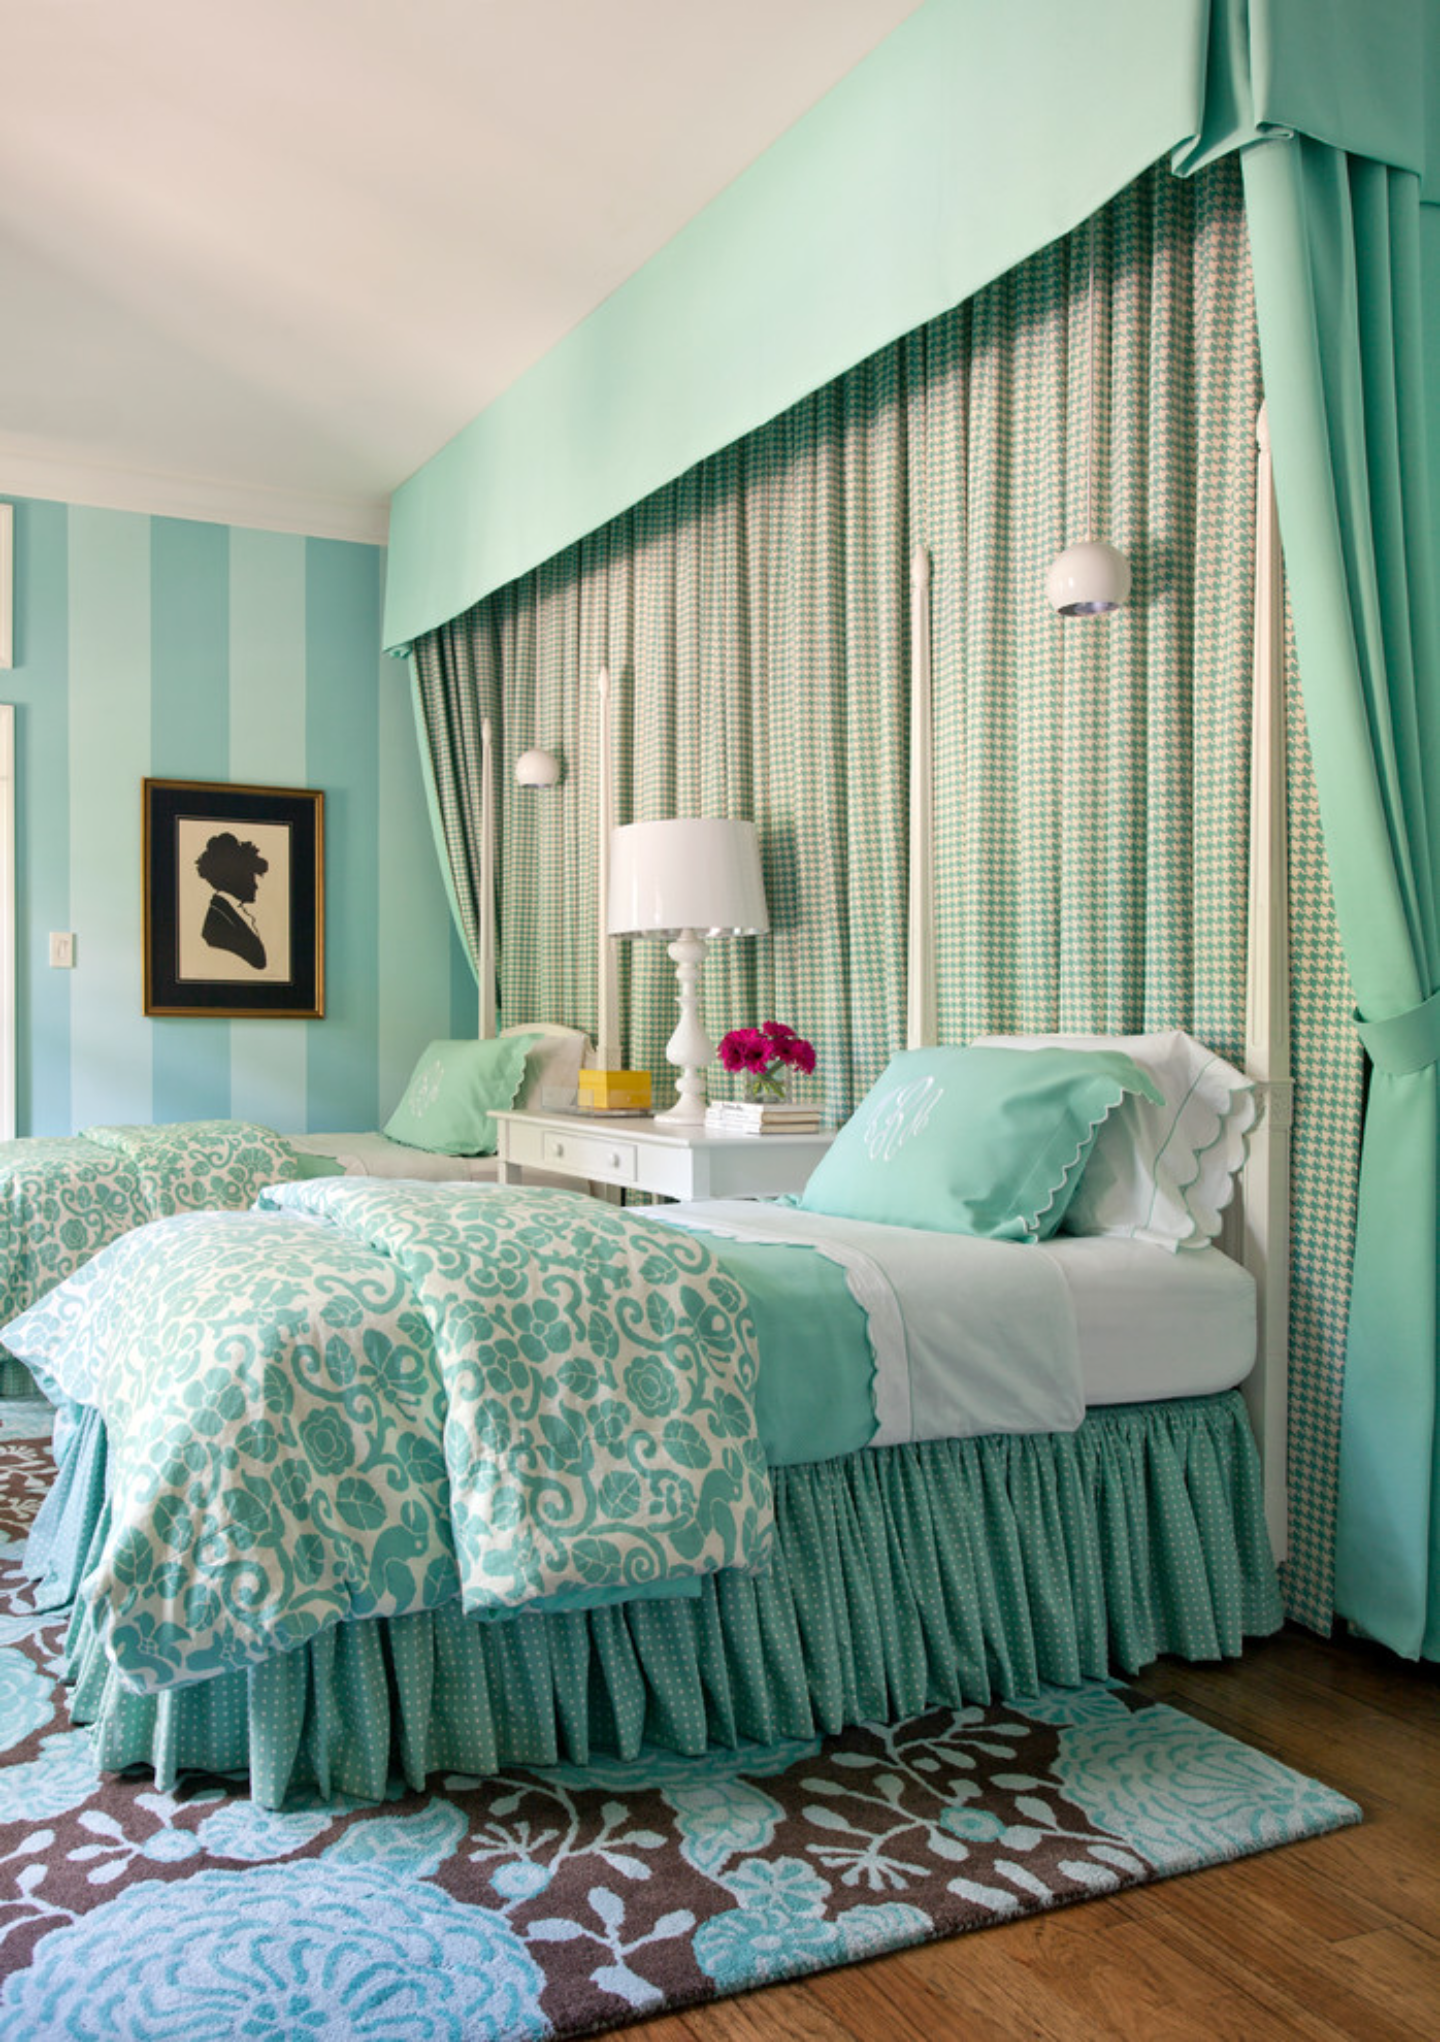 Perfect shared bedroom in tealseafoammint with accent